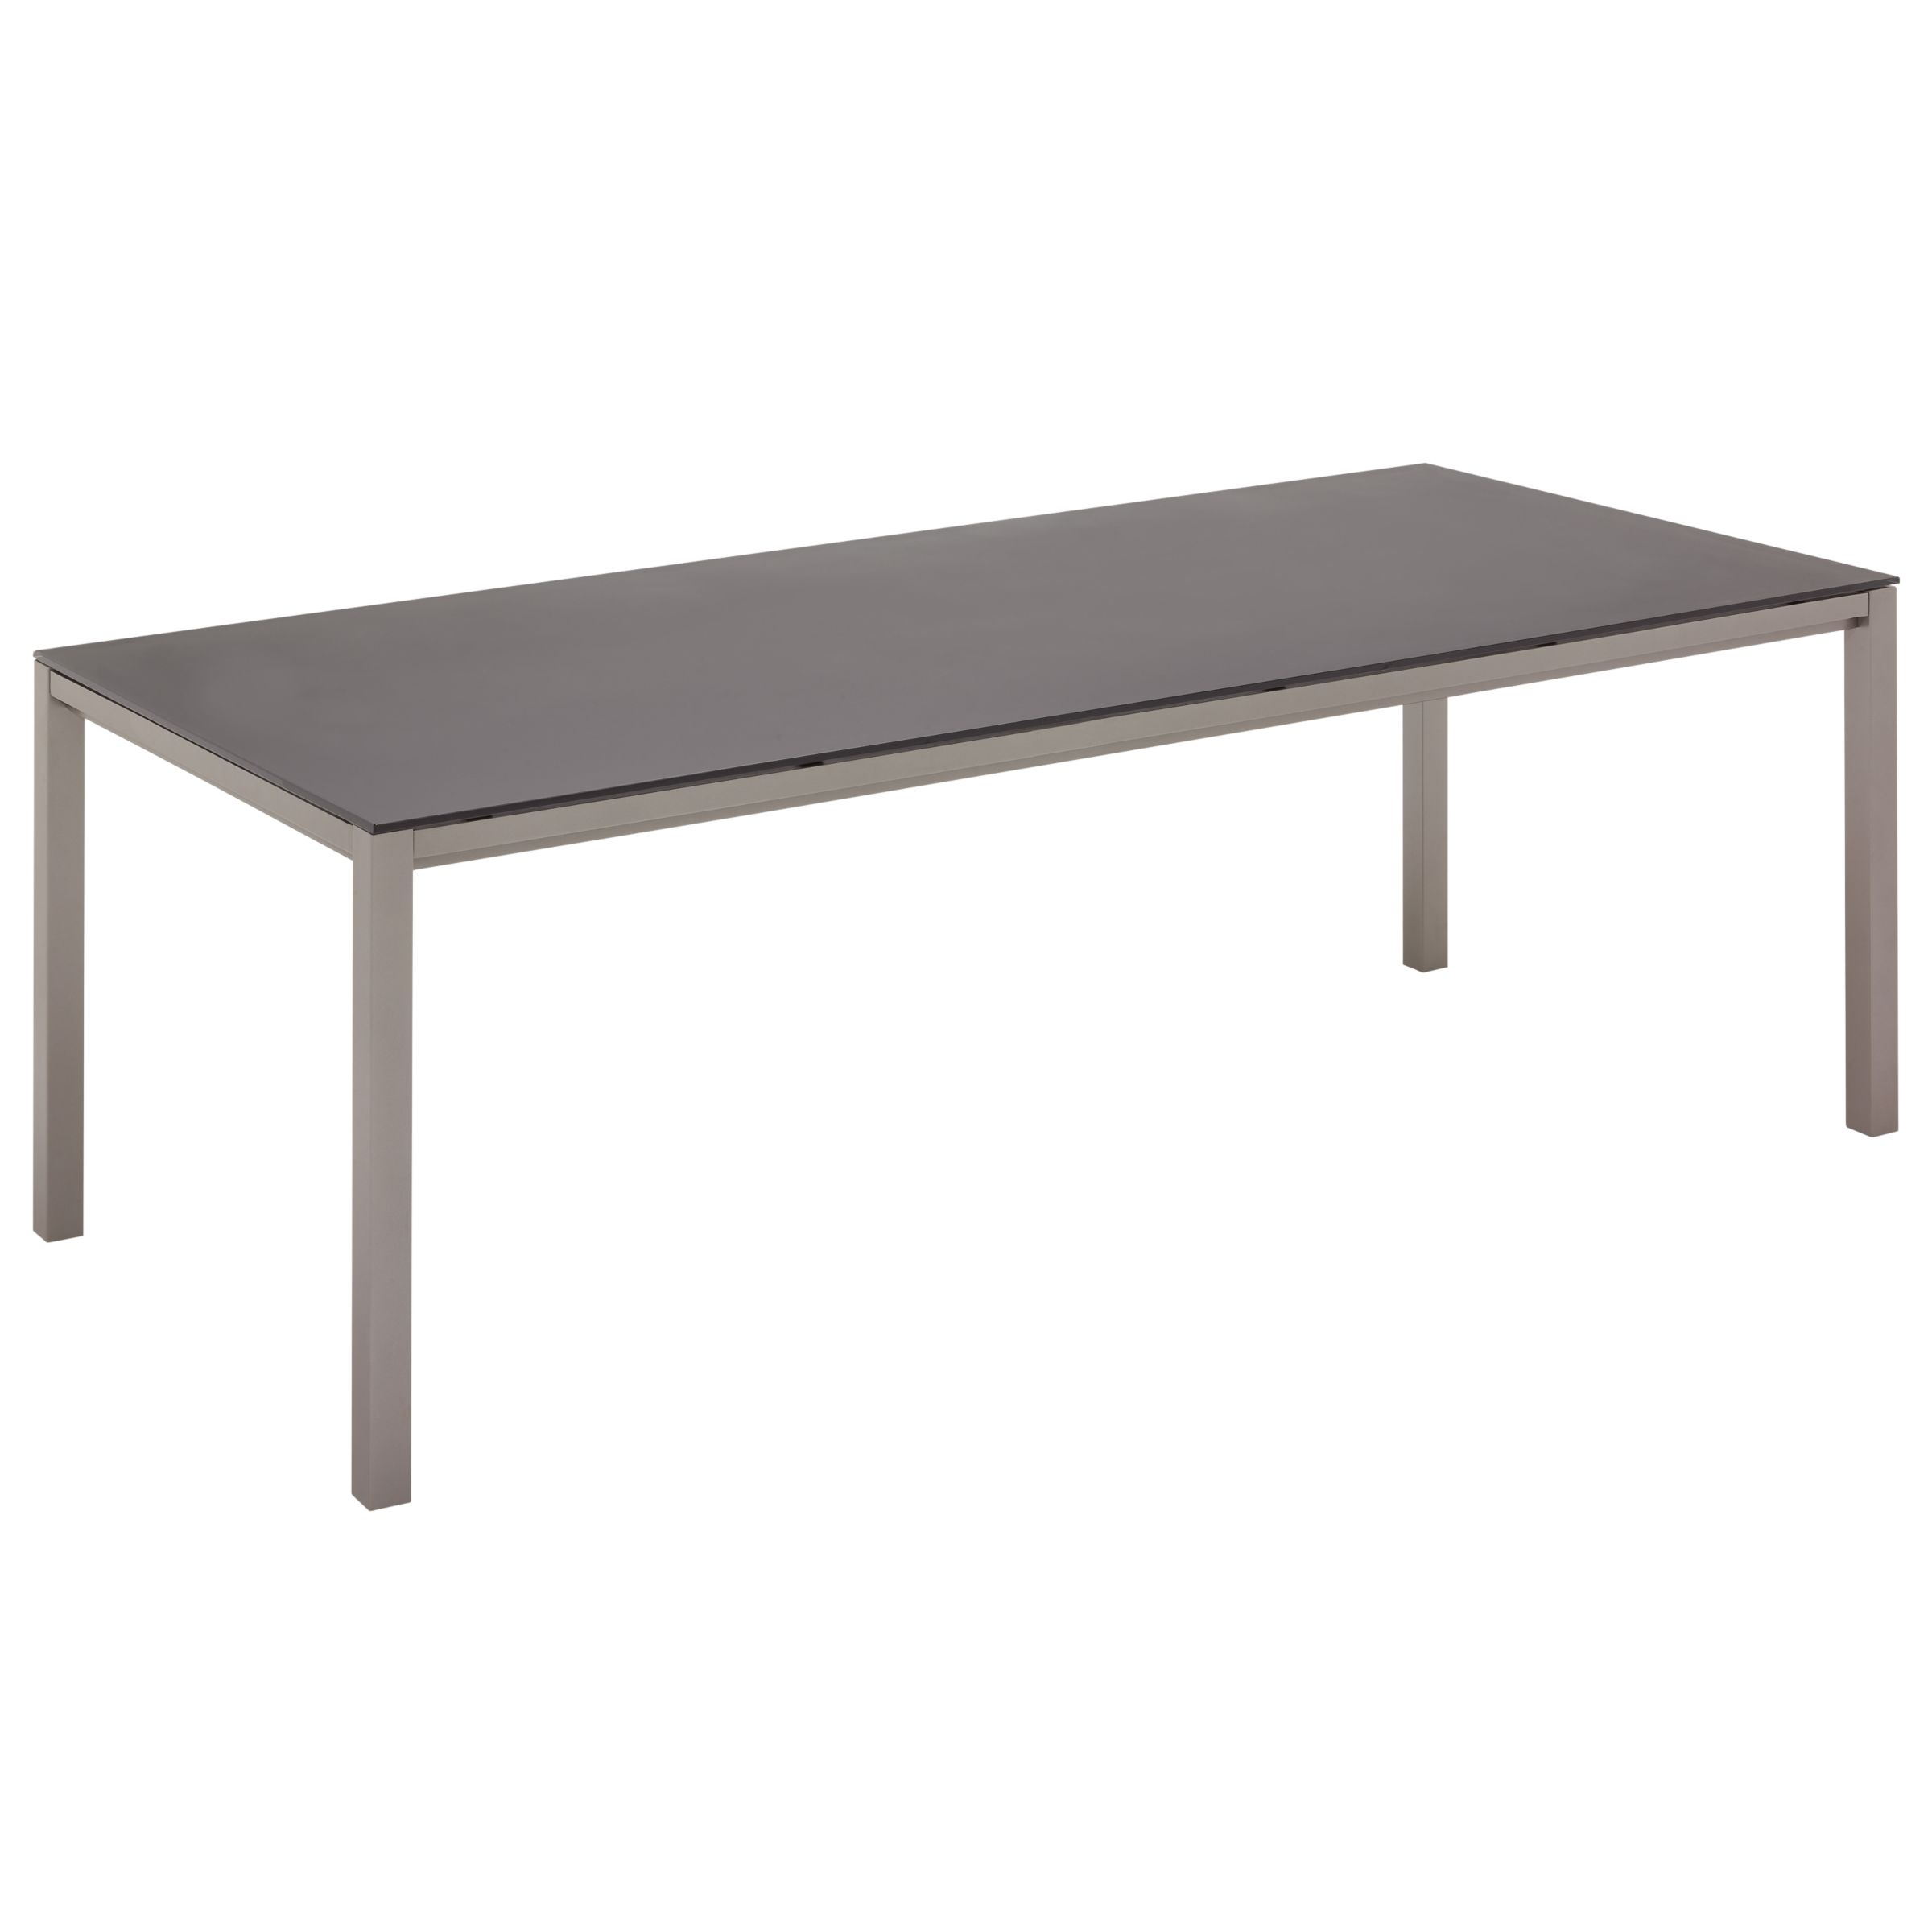 Gloster Azore Rectangular 8 Seater Outdoor Dining Table, Tungsten